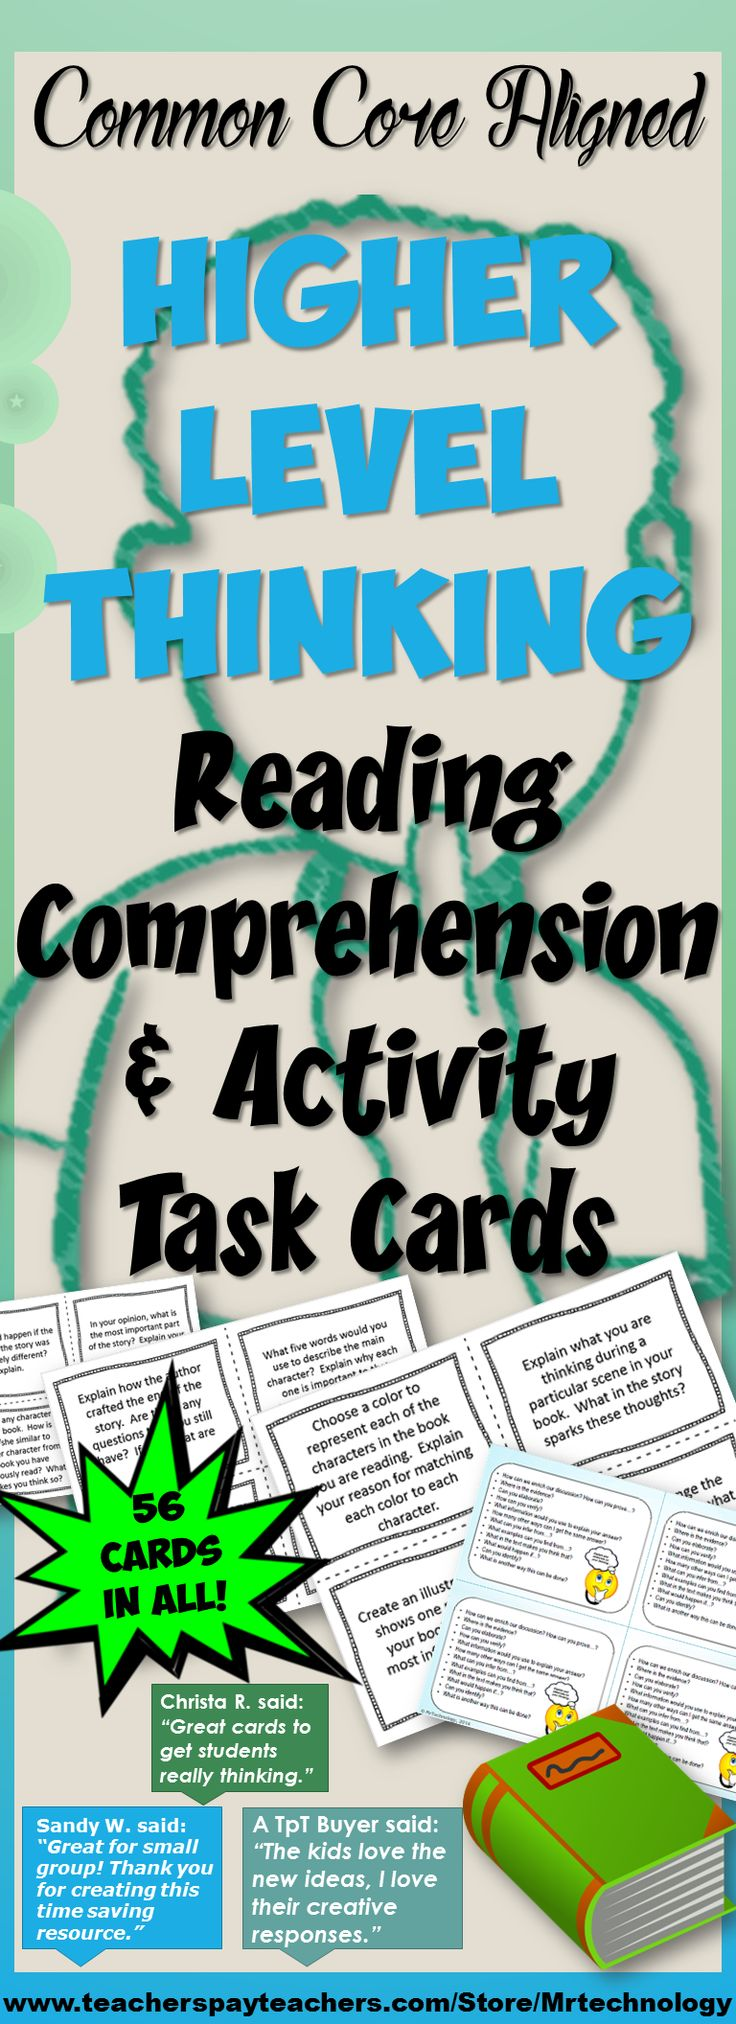 Common Core Aligned Higher Level Thinking Reading Comprehension Task Cards w/ Student Desk Reminders contains 56 cards in all with thought-provoking questions to be used in either a reader's notebook or during classroom discussions. Can also be used with whole-class or small group read-alouds, partnered reading, differentiated instruction, or individual reading periods. Laminate, cut, and use!